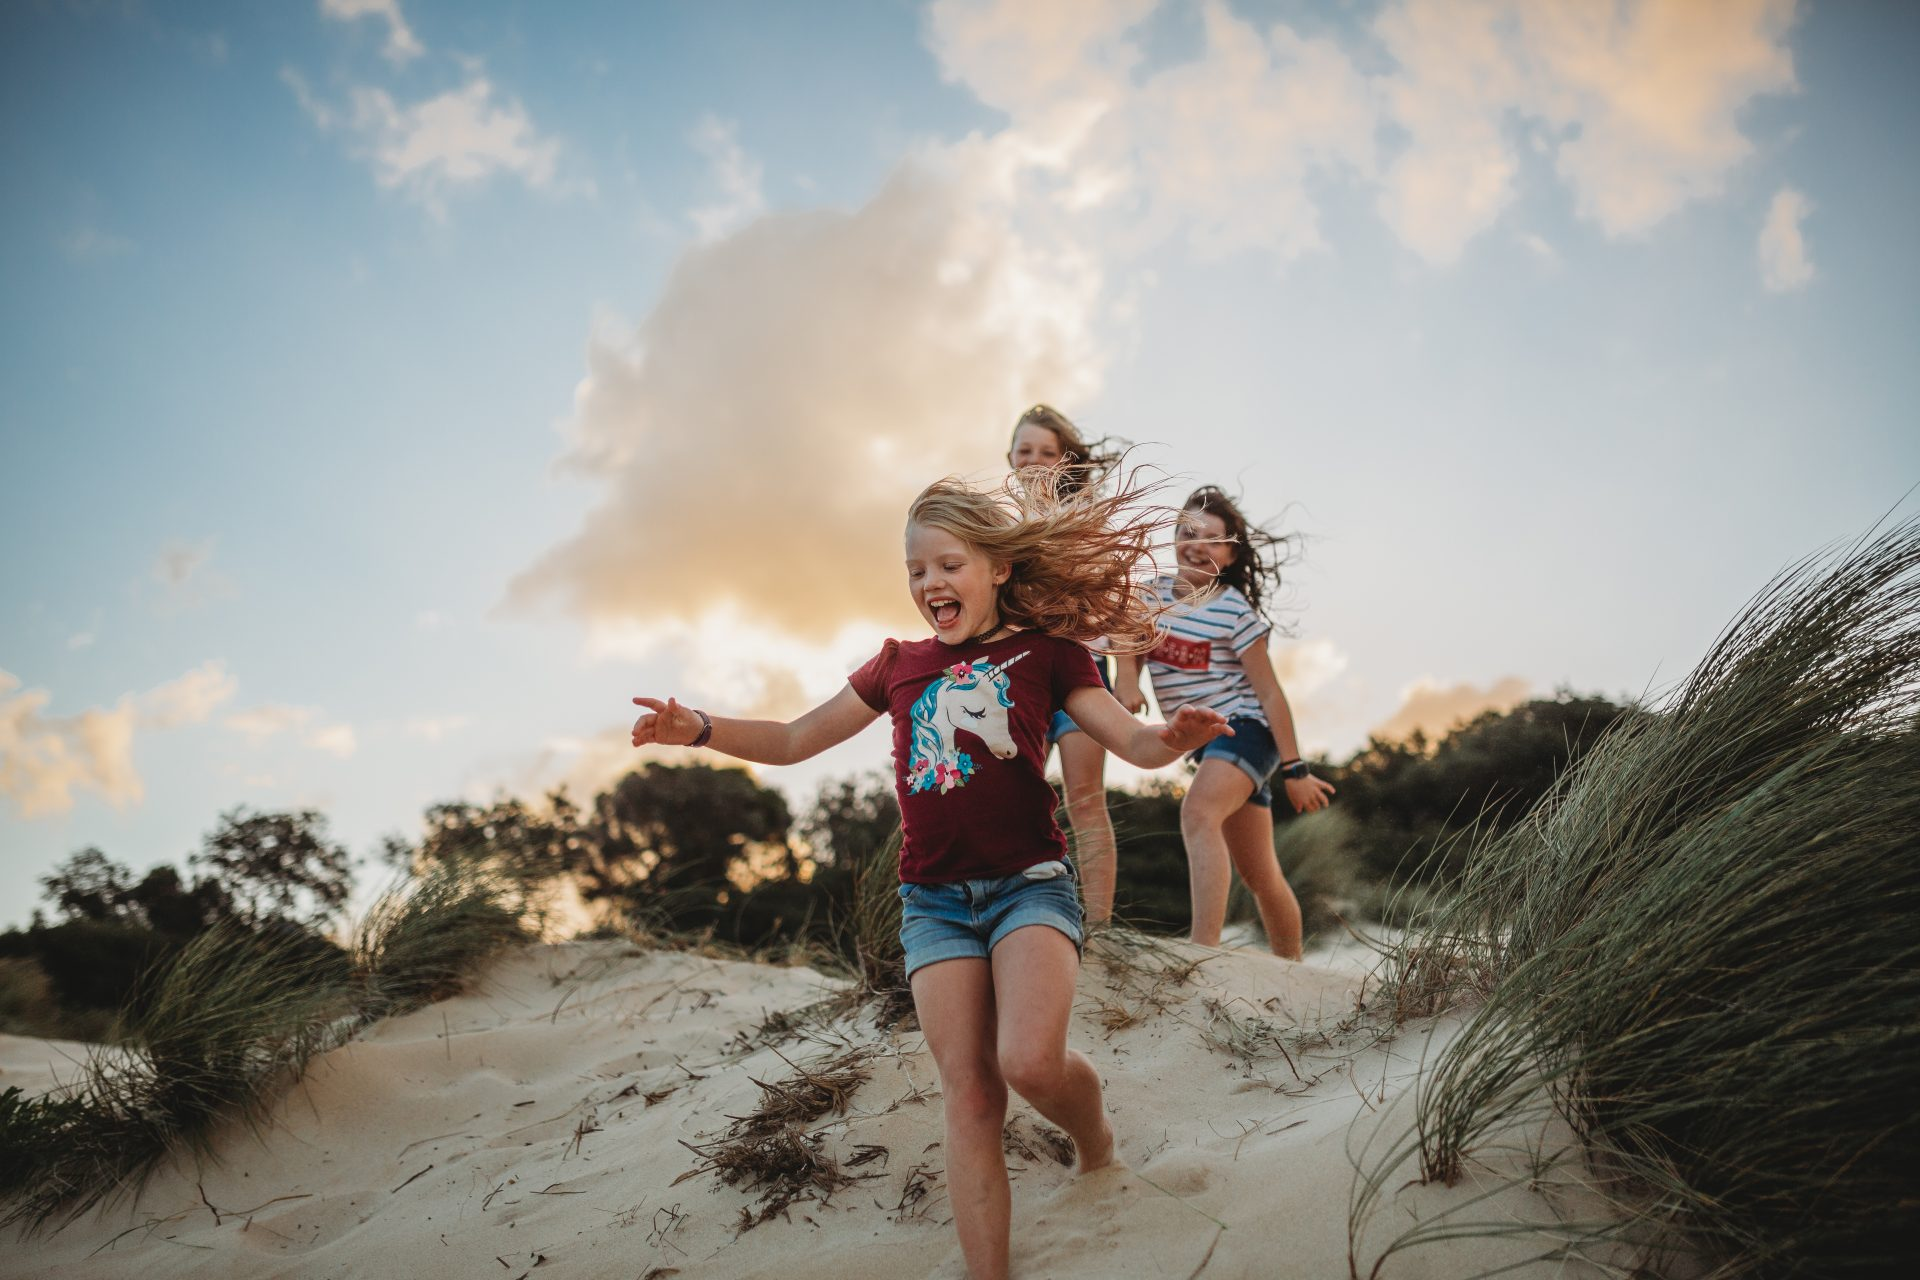 Young blonde girl runs down a sand dune, with two friends standing in the background